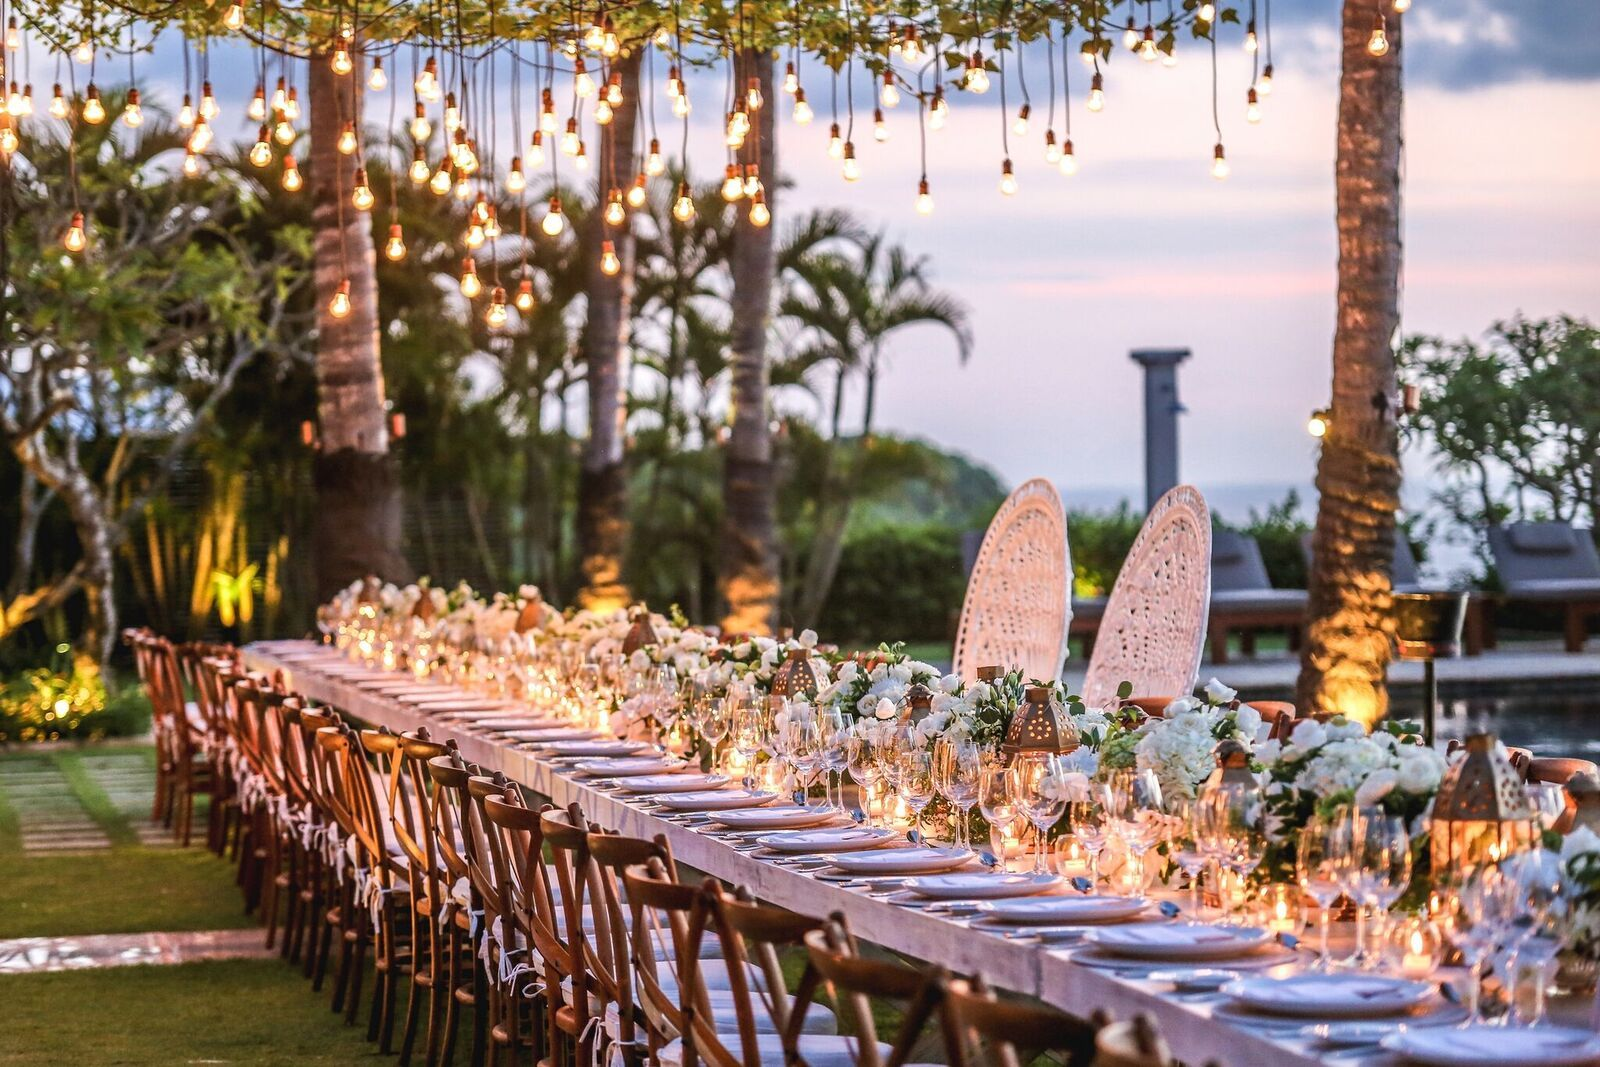 Your bali wedding bali event hire wedding planners we love your bali wedding bali event hire wedding planners we love reception ideas junglespirit Gallery